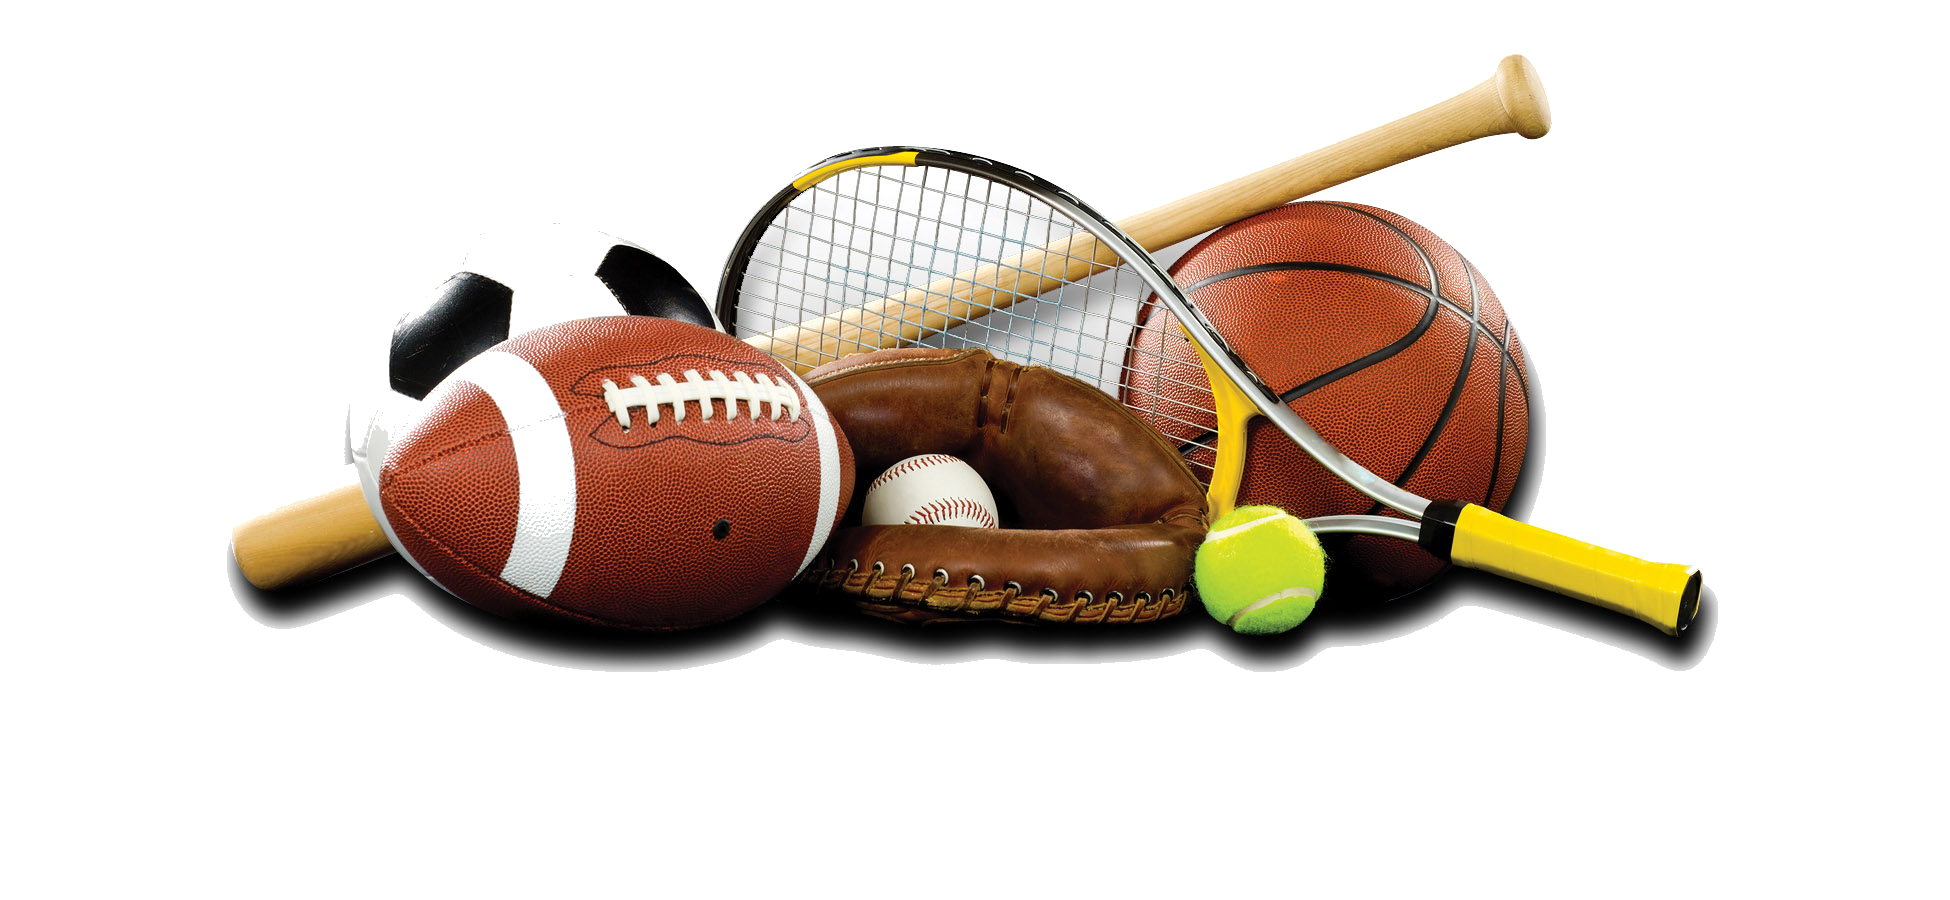 Sports Equipment Images   Pictures   Becuo